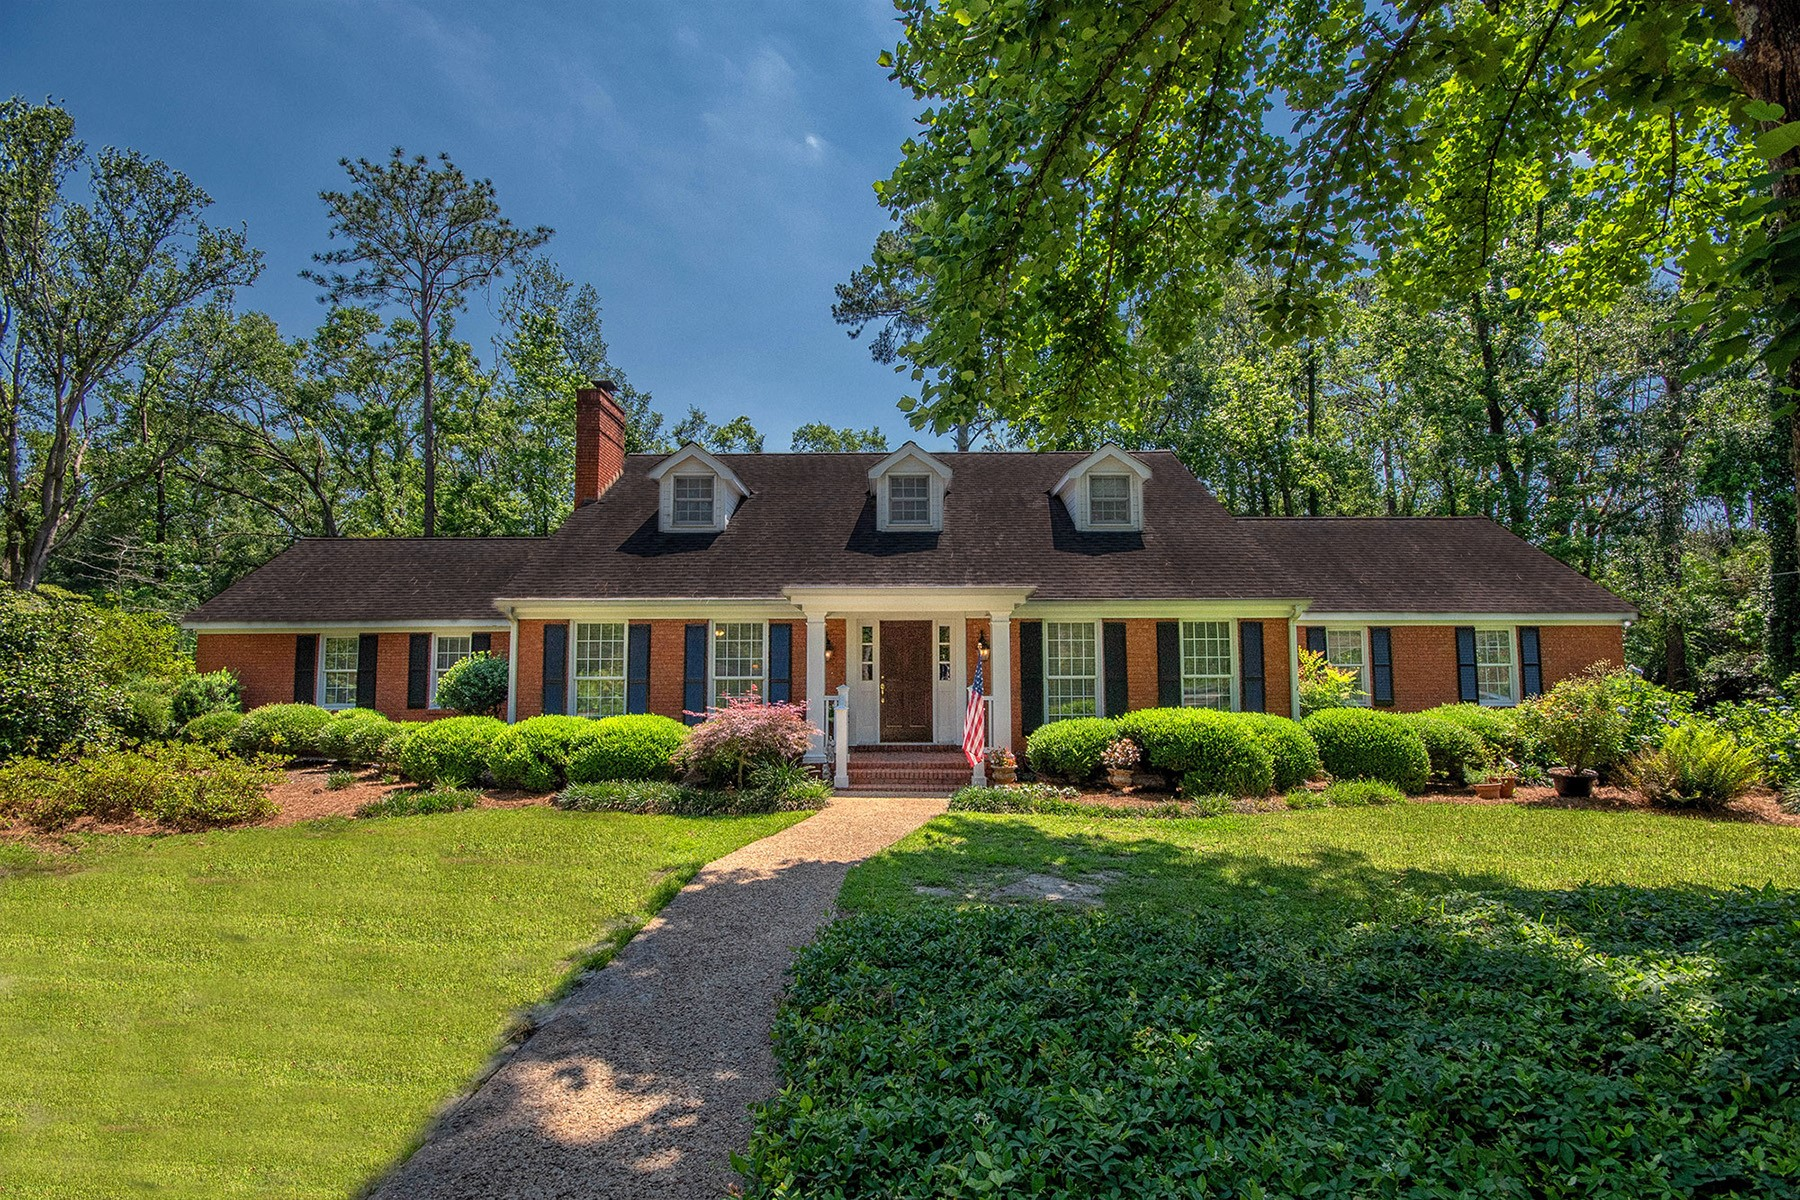 Single Family Homes for Active at Lakefront Home With Great Curb Appeal And Classic Southern Elegance! 1902 Douglas Drive Bainbridge, Georgia 39819 United States